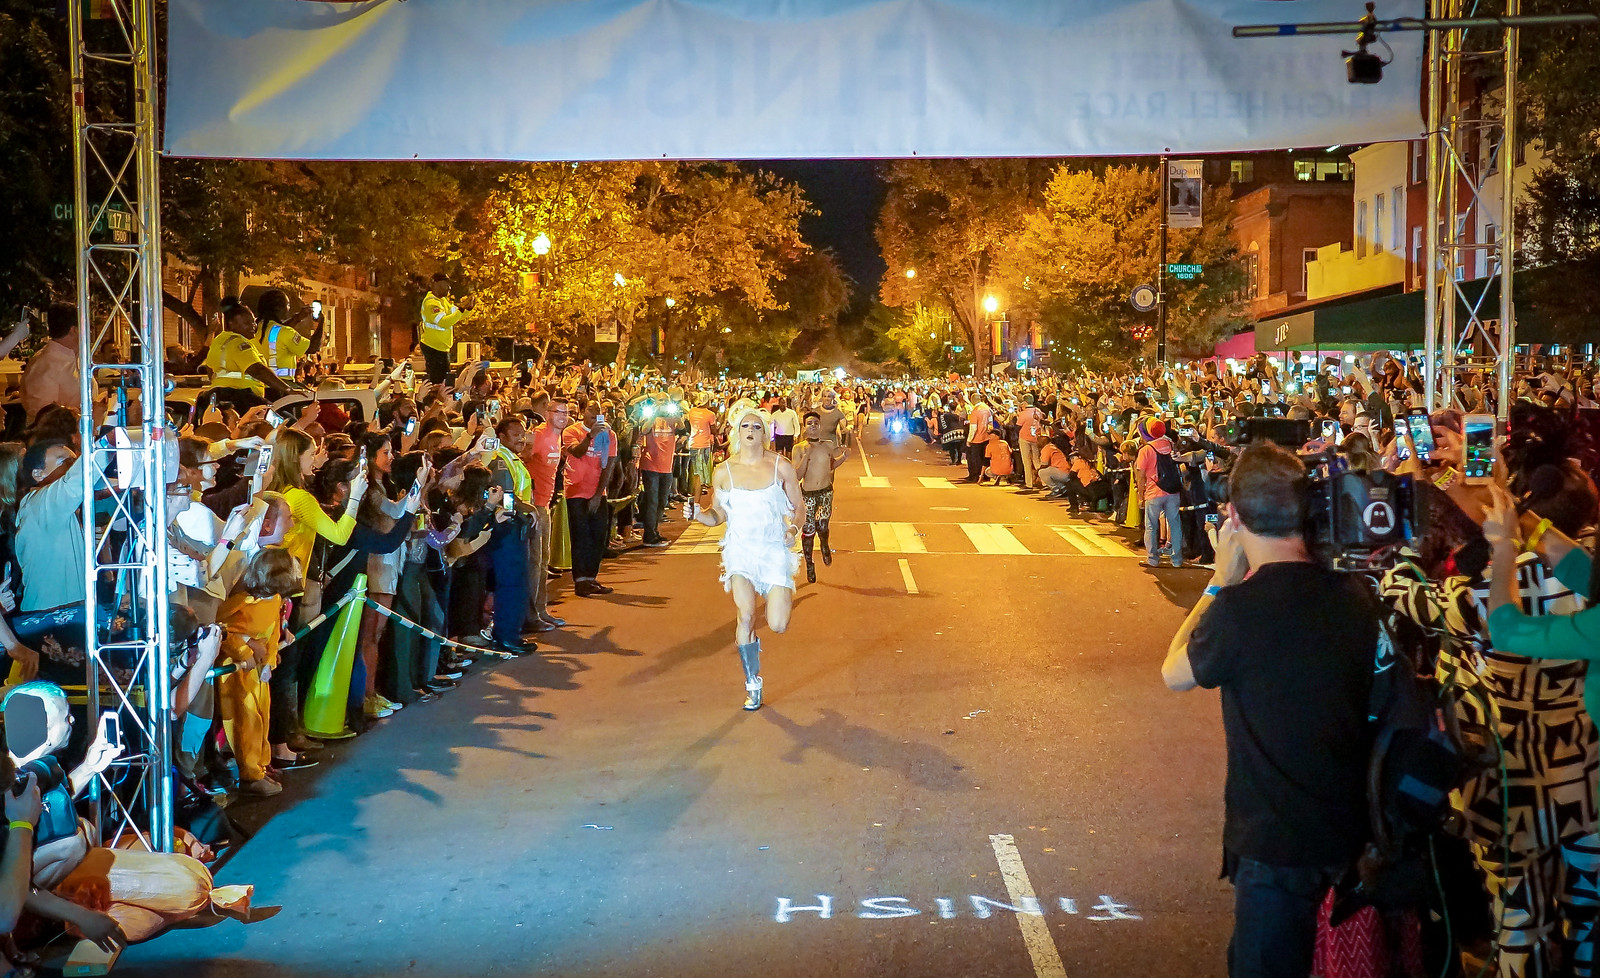 2017.10.24 Dupont Circle High Heel Race, Washington, DC USA 9991